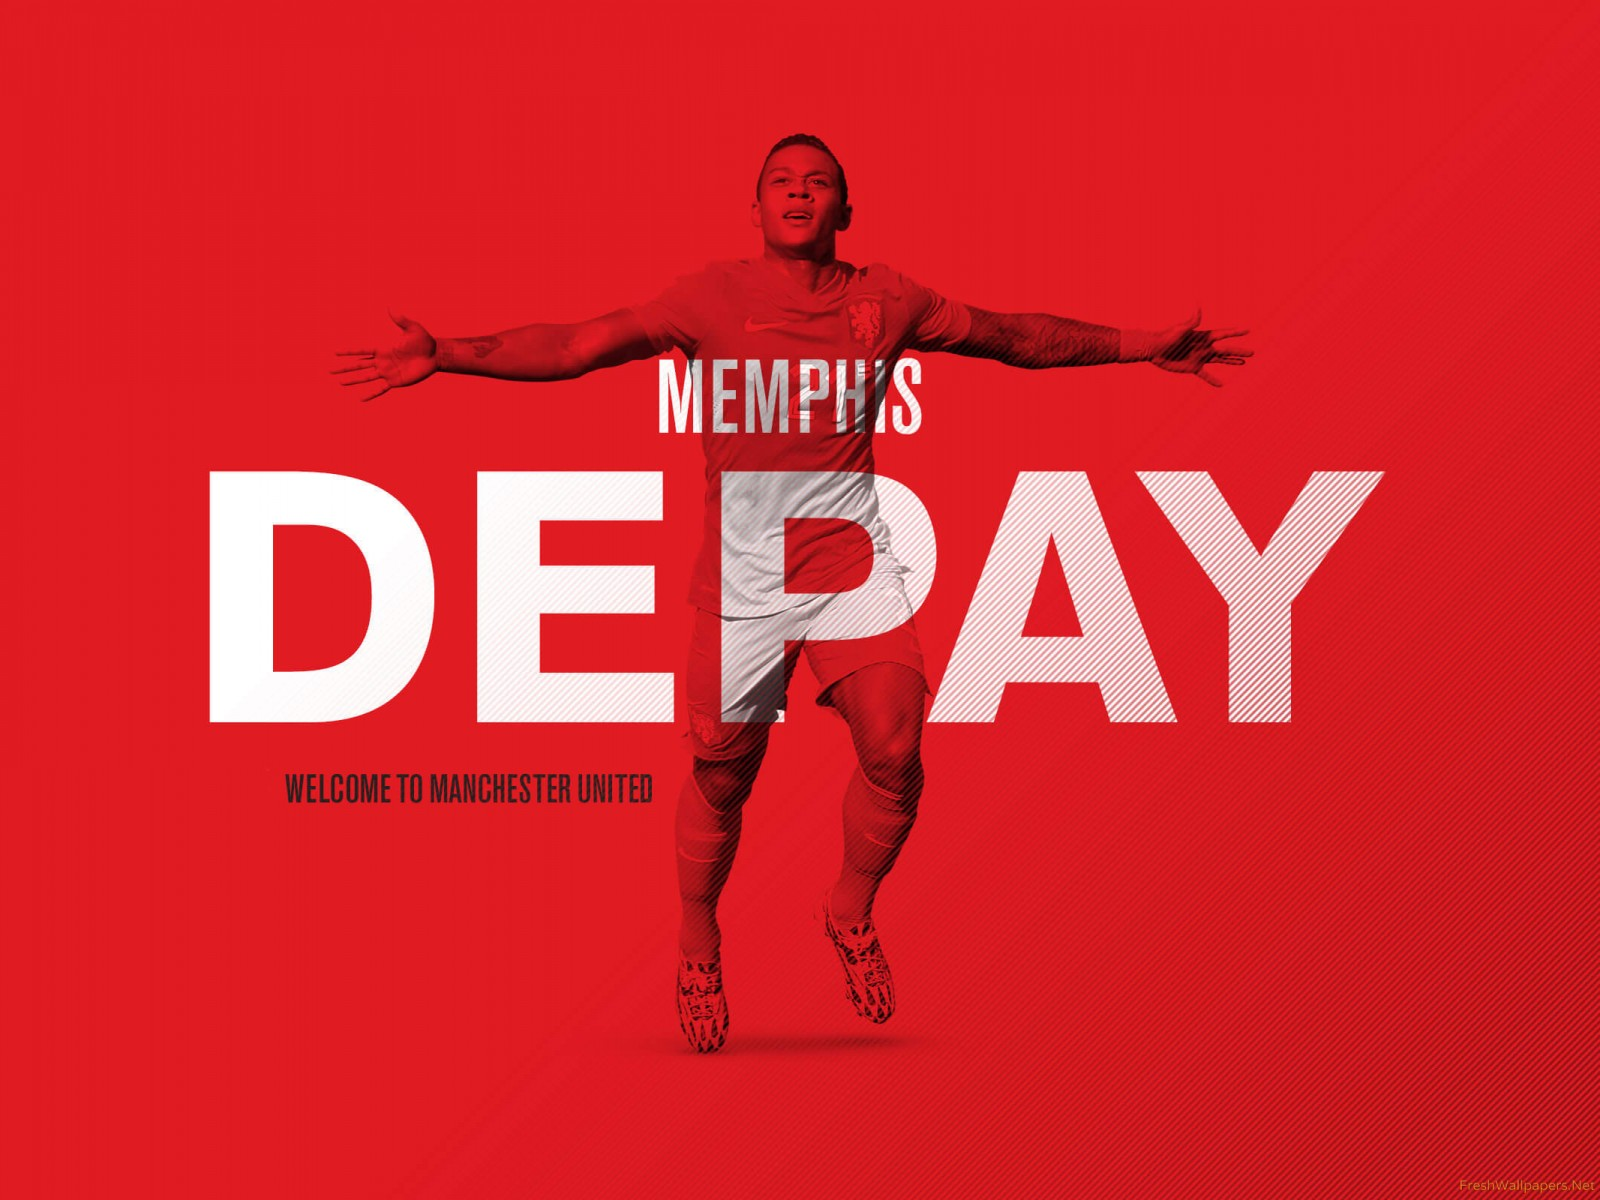 High Quality Manchester United Wallpapers: Memphis Depay Wallpapers High Resolution And Quality Download